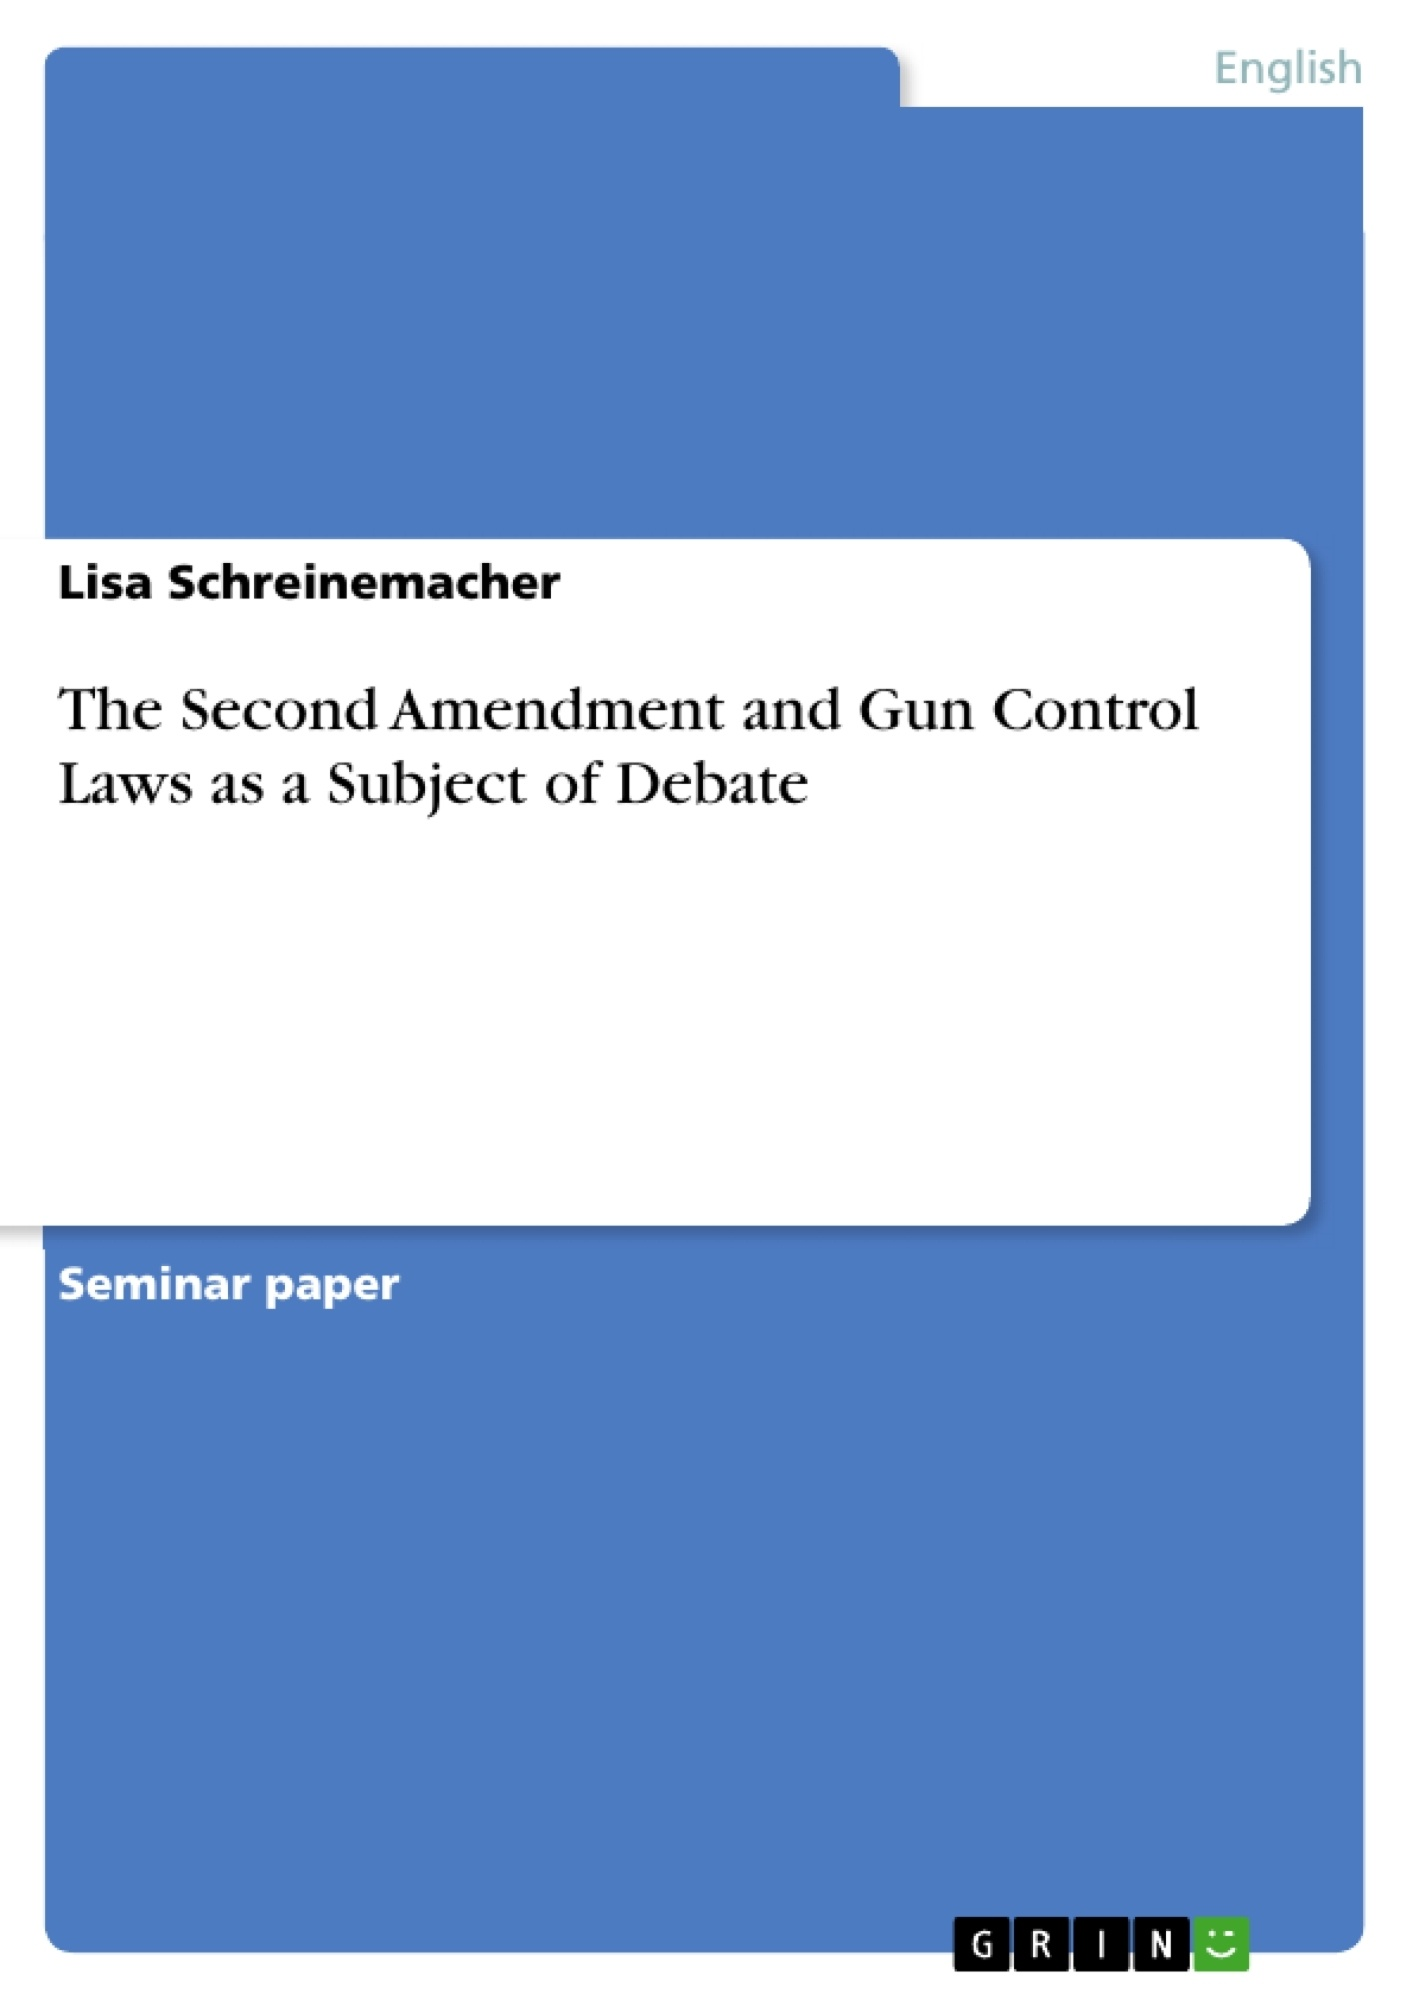 Title: The Second Amendment and Gun Control Laws as a Subject of Debate